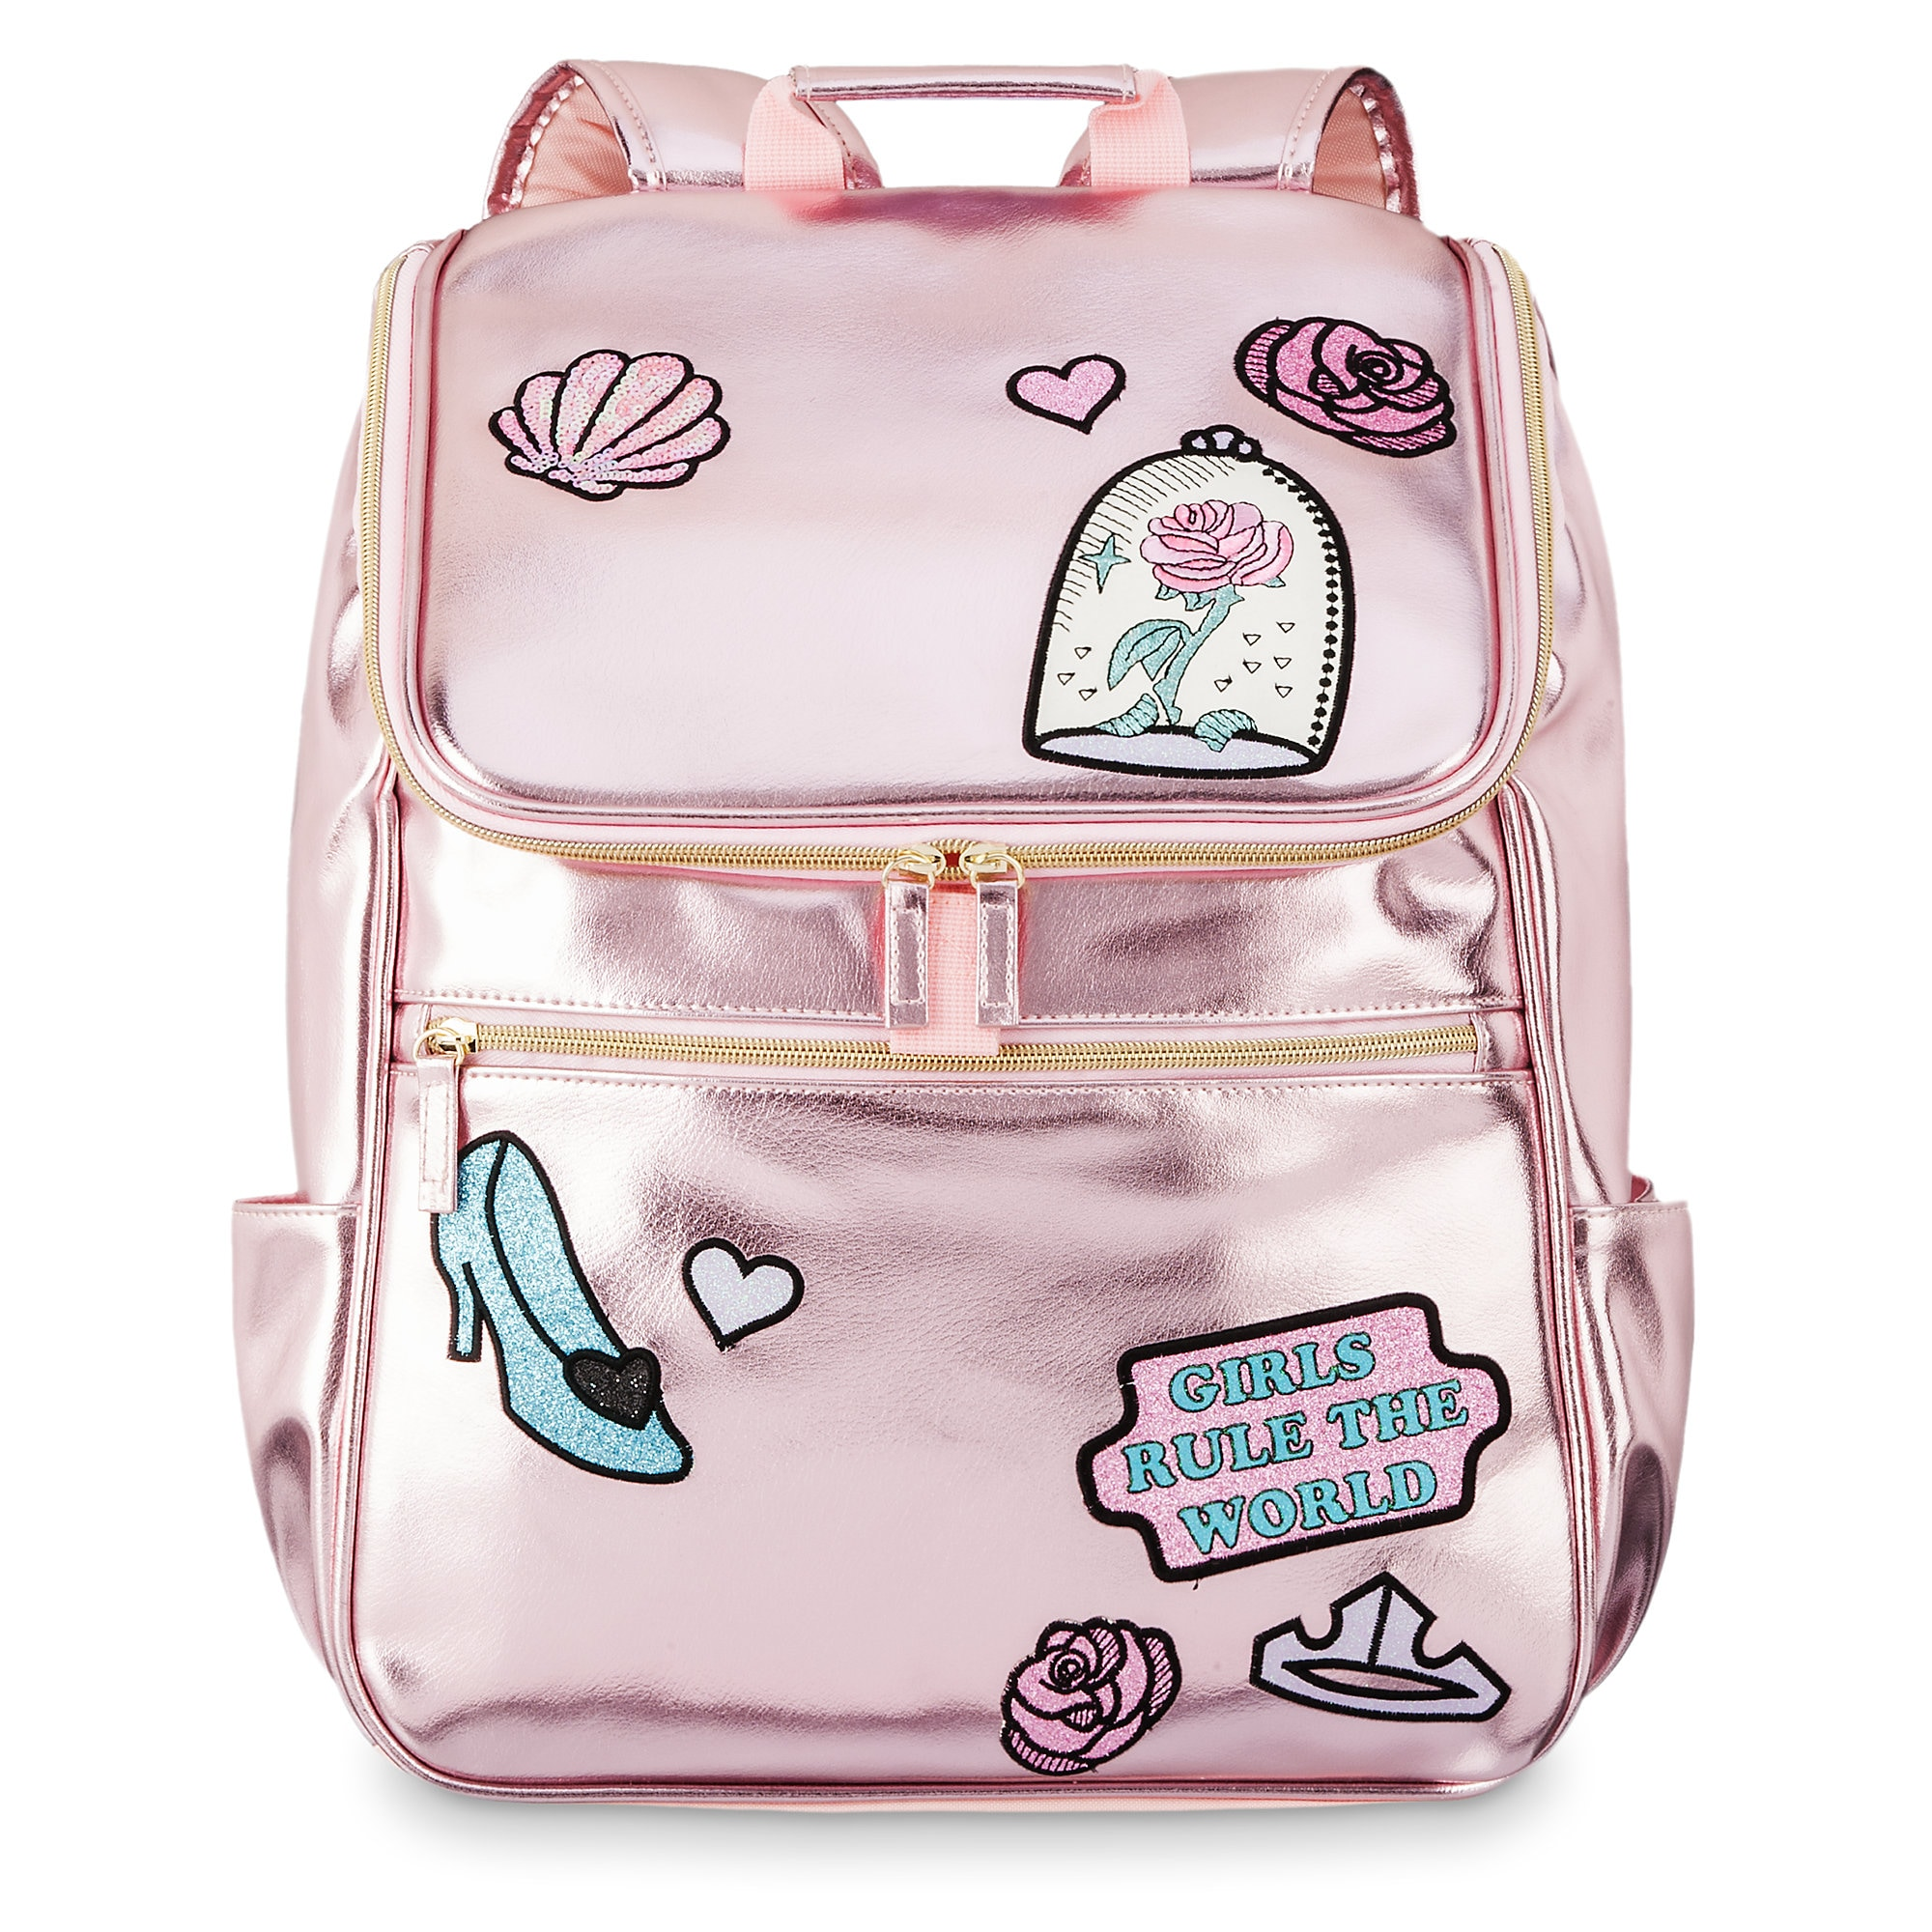 5c5cb8e70966 Product image of disney princess icons backpack for kids jpg 1200x1200 Princess  peach backpack